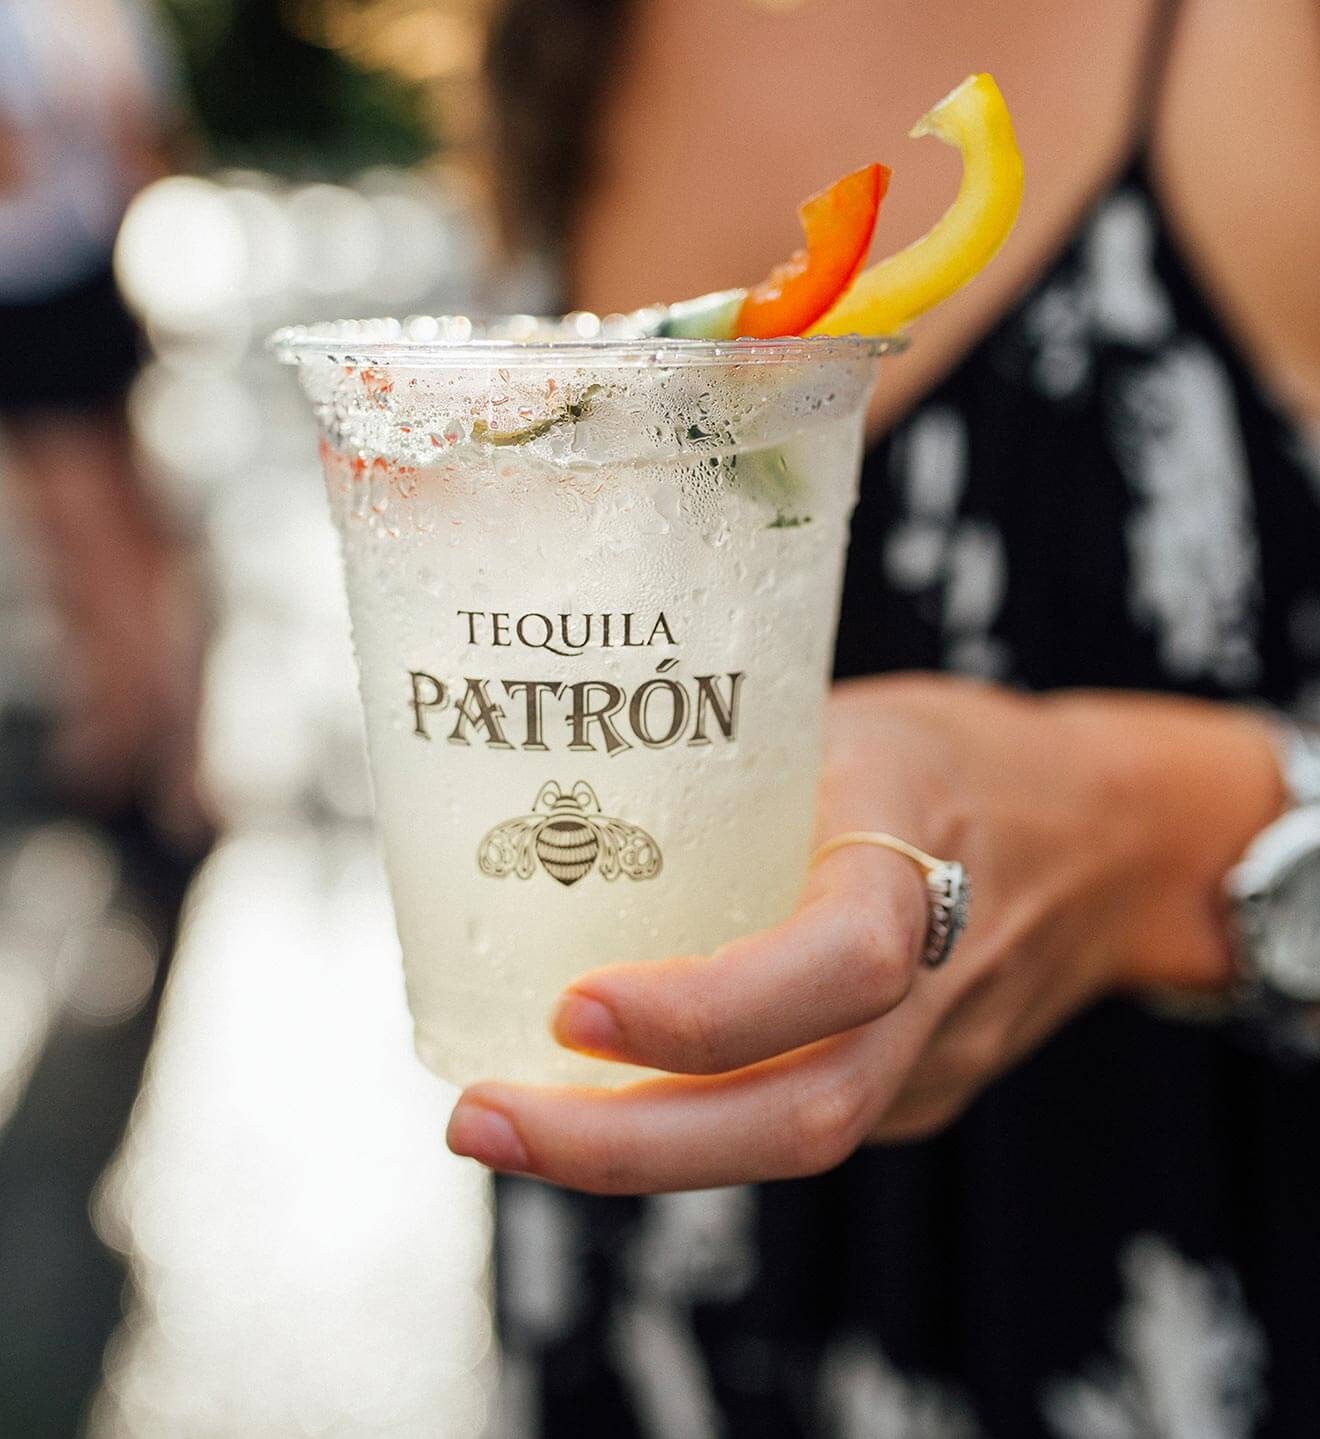 'Patrón the Summer', enjoying a cocktail